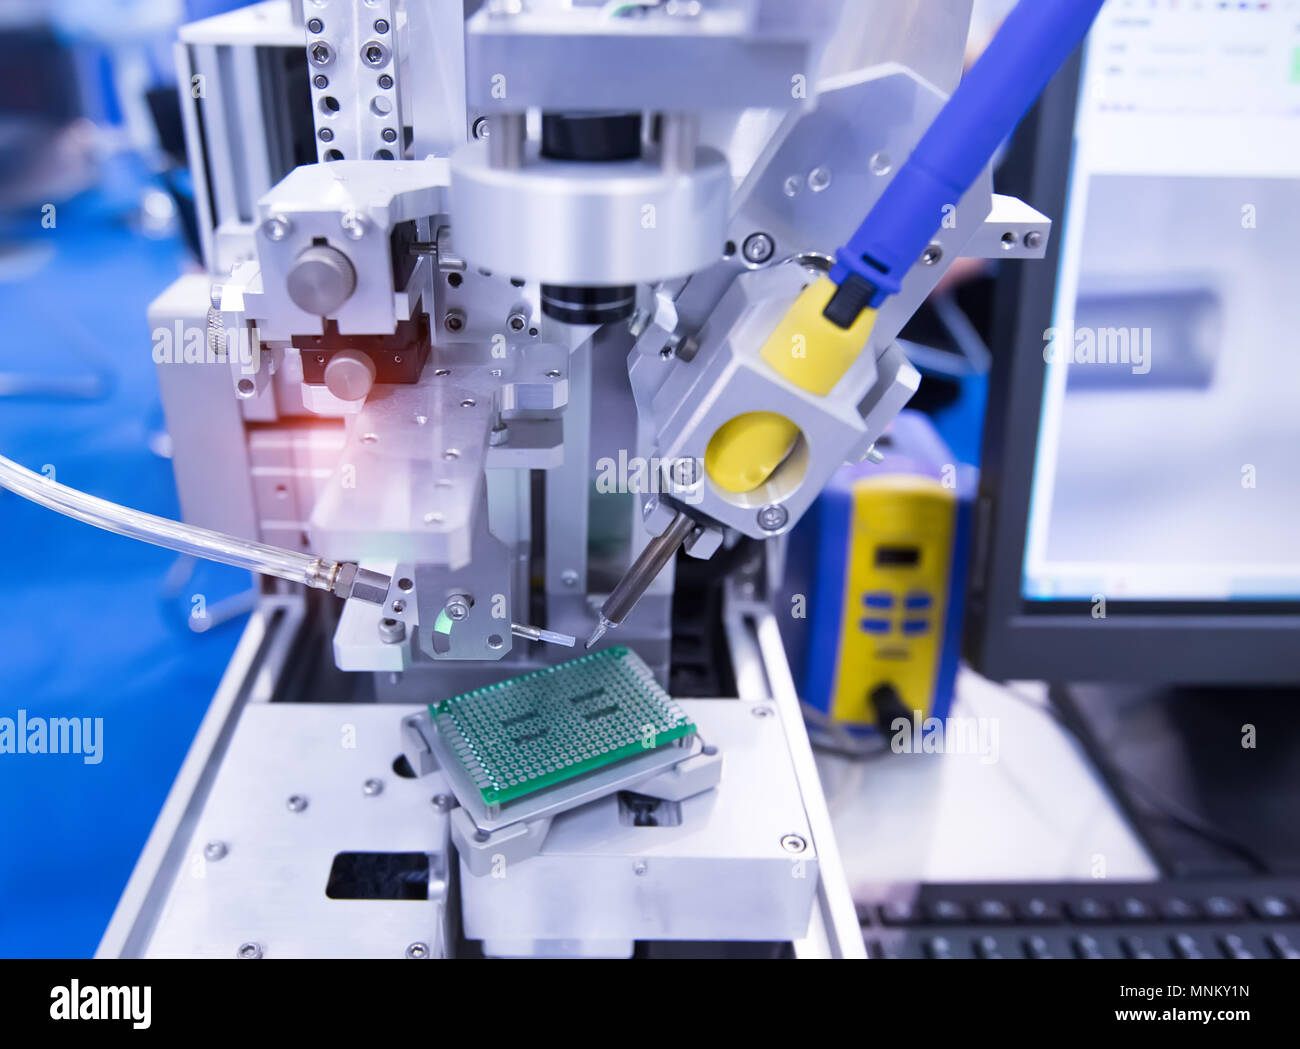 Robot Machine Tool At Printed Circuit Boards Industrial Manufacture Stockfoto Board Pcb Used In Electronic Factory